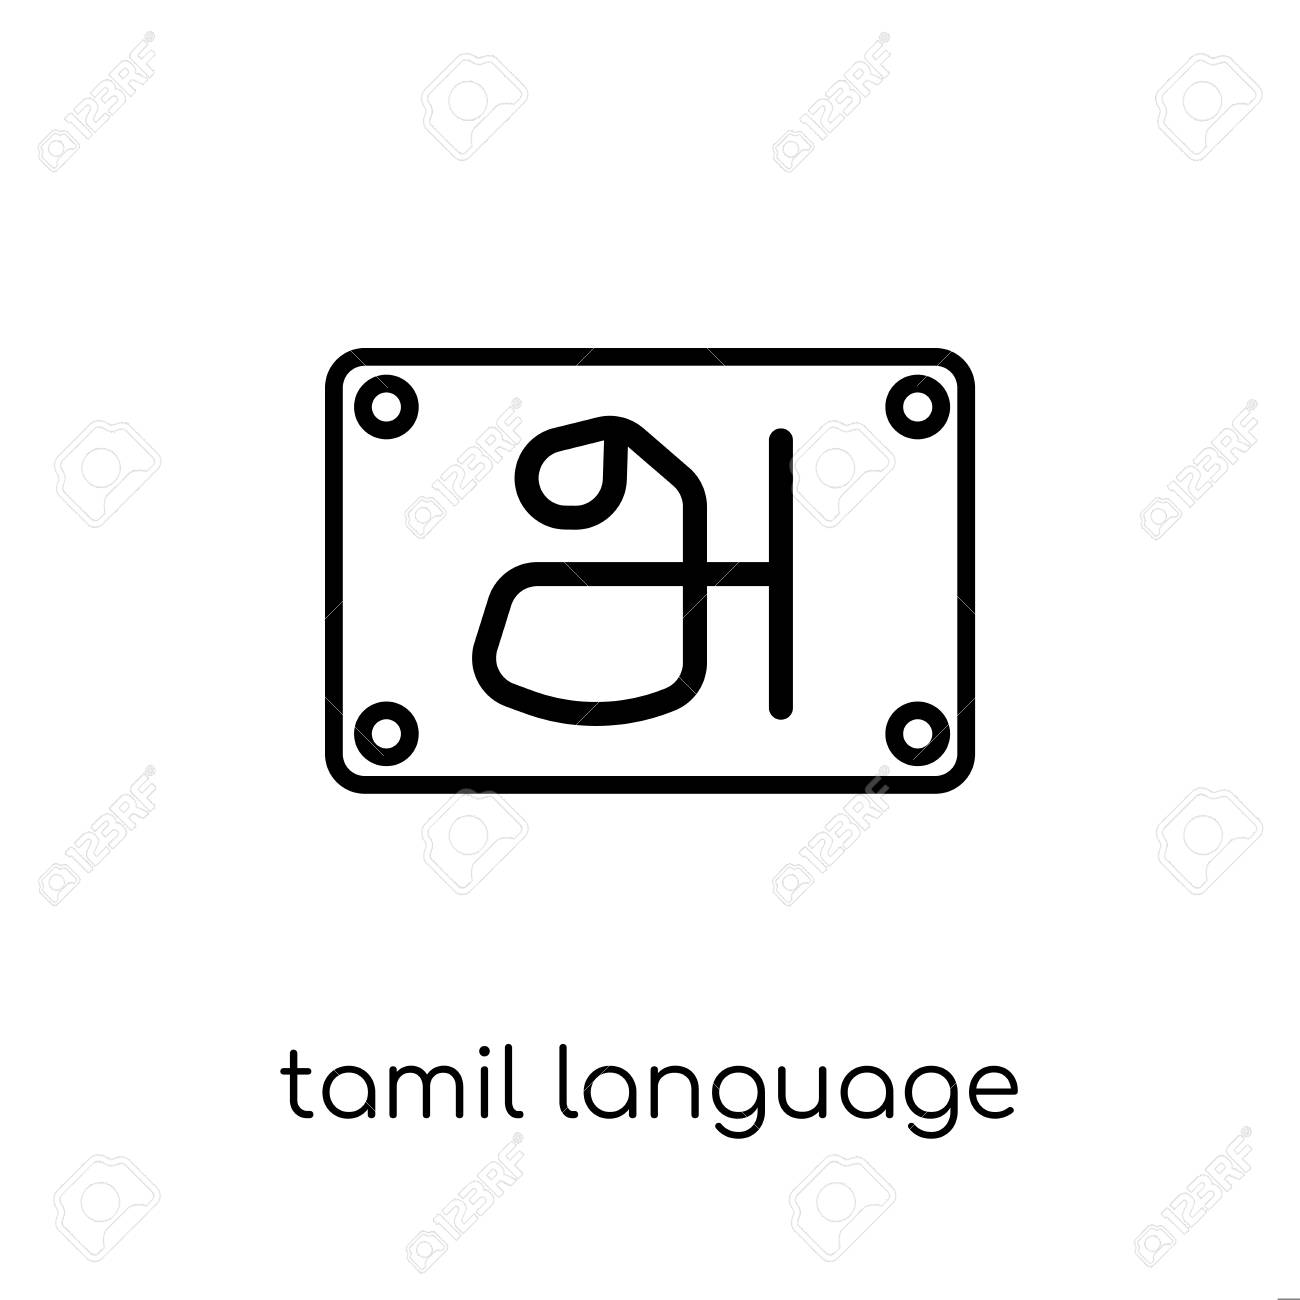 tamil language icon  Trendy modern flat linear vector tamil language